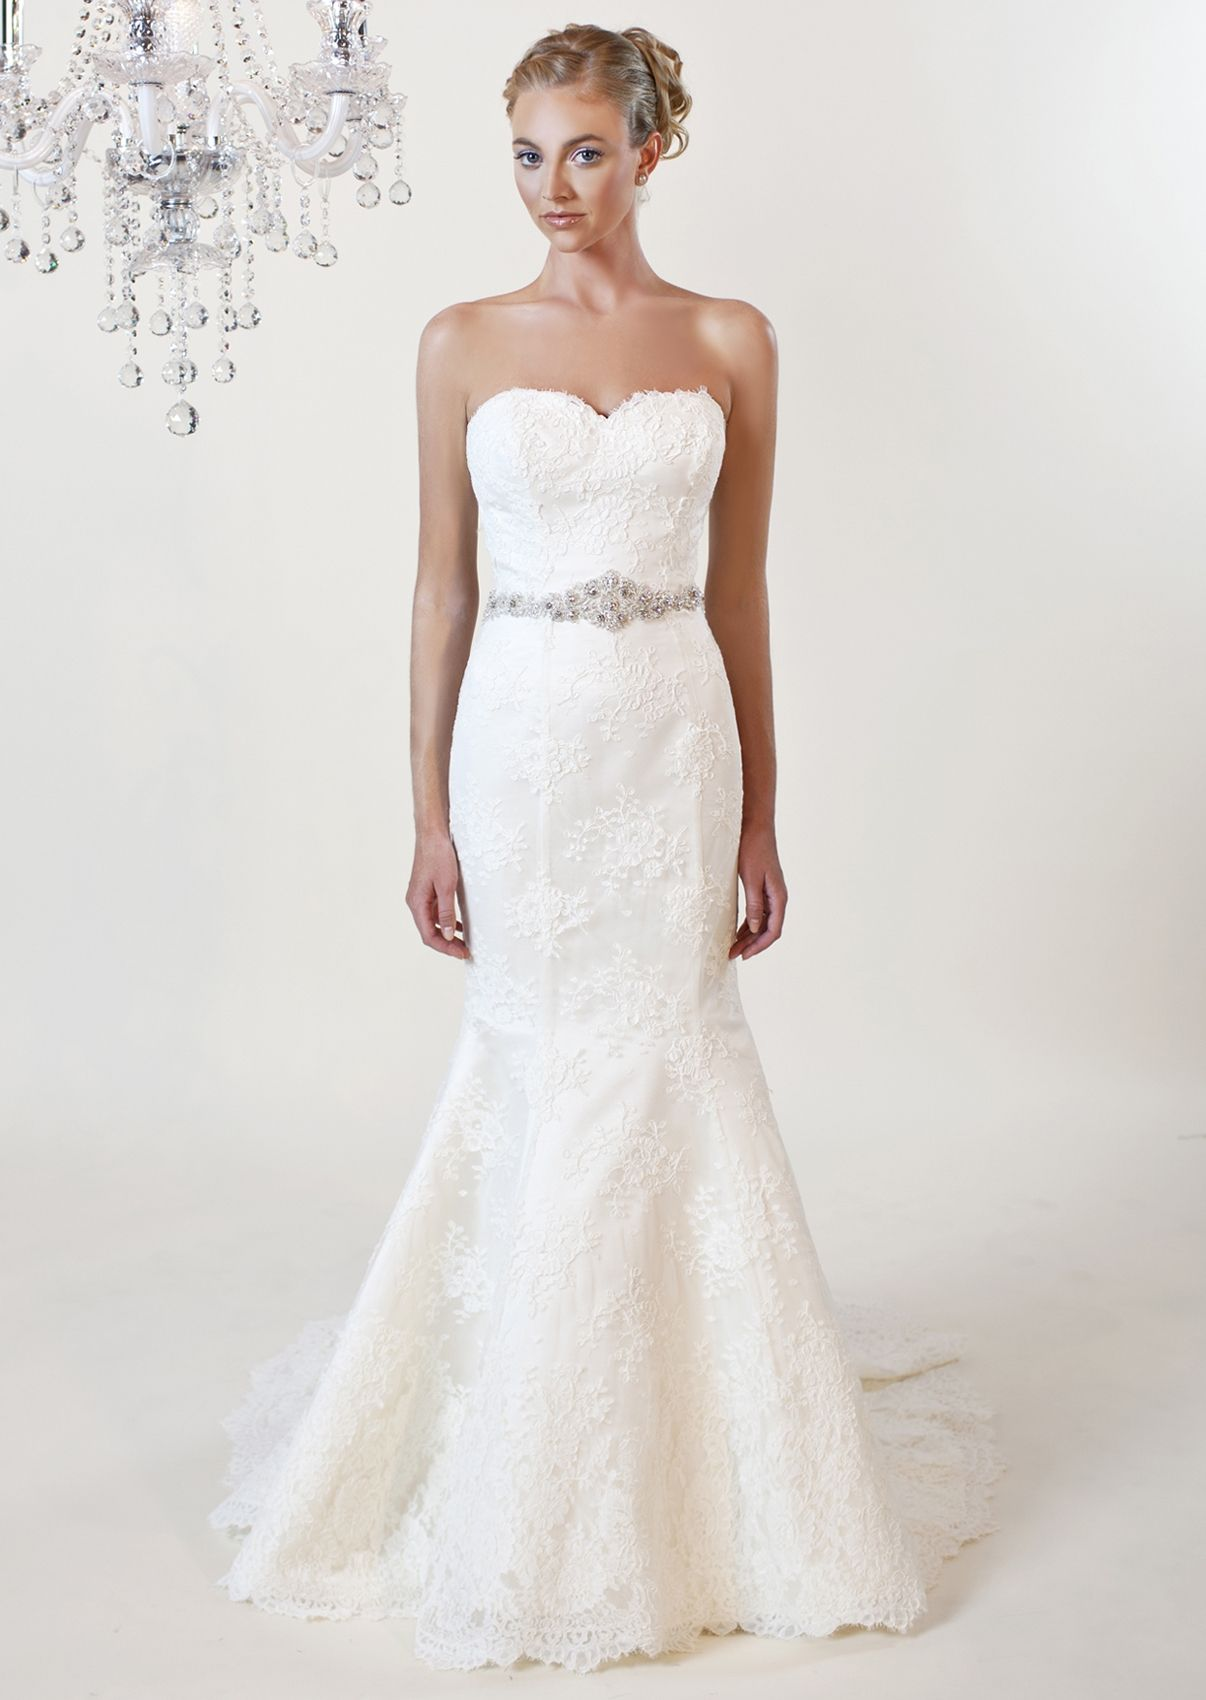 Diamond Label collection features bridal gowns handcrafted